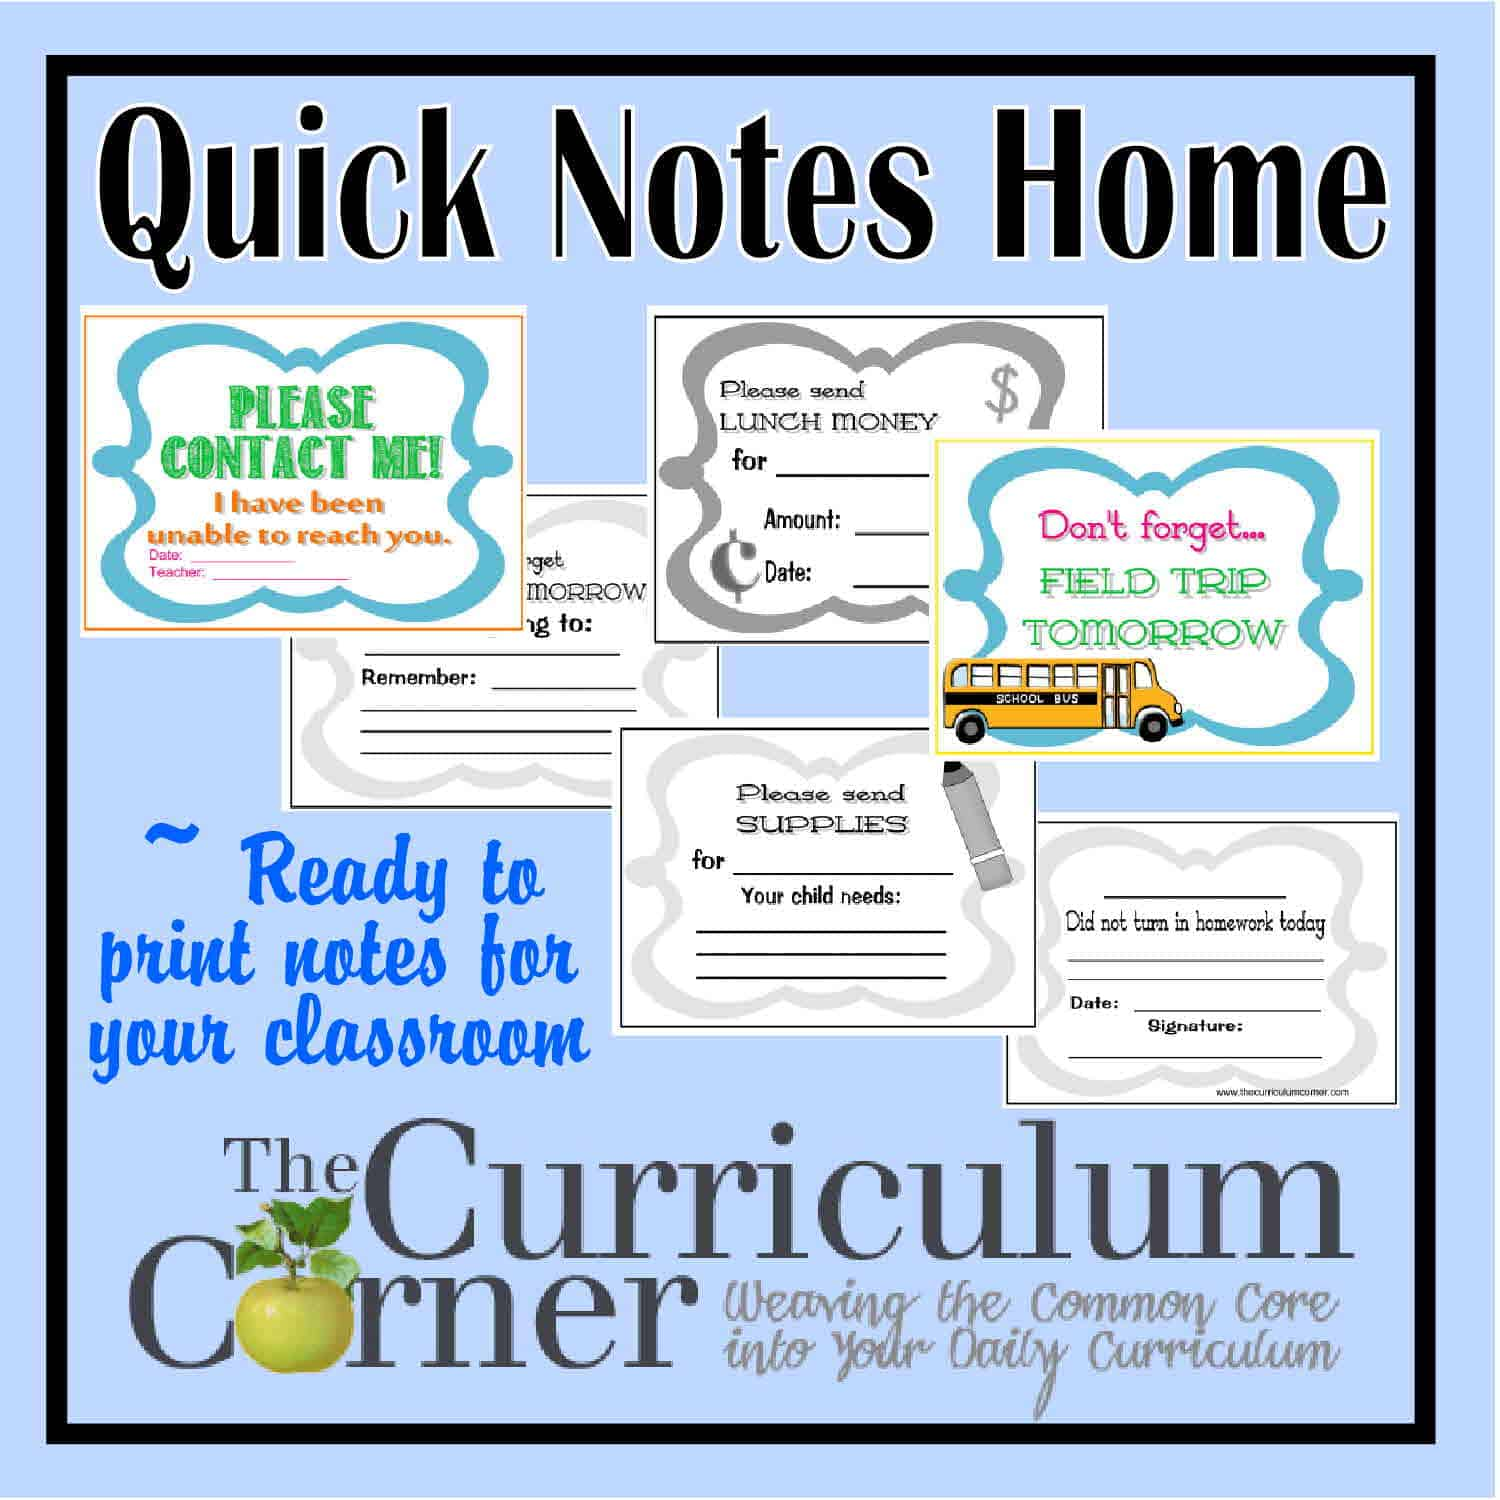 Quick Notes Home